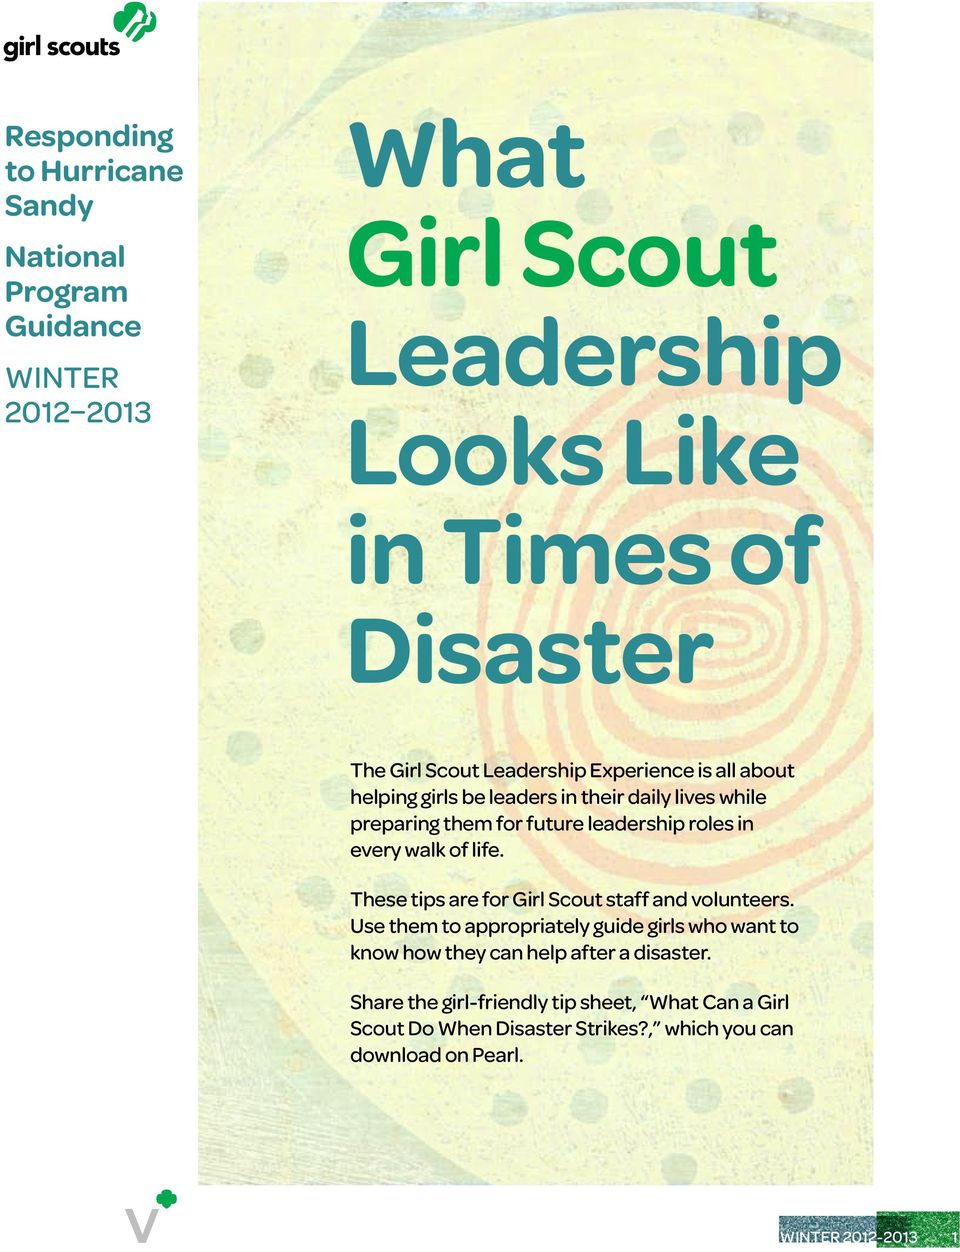 every walk of life. These tips are for Girl Scout staff and volunteers.